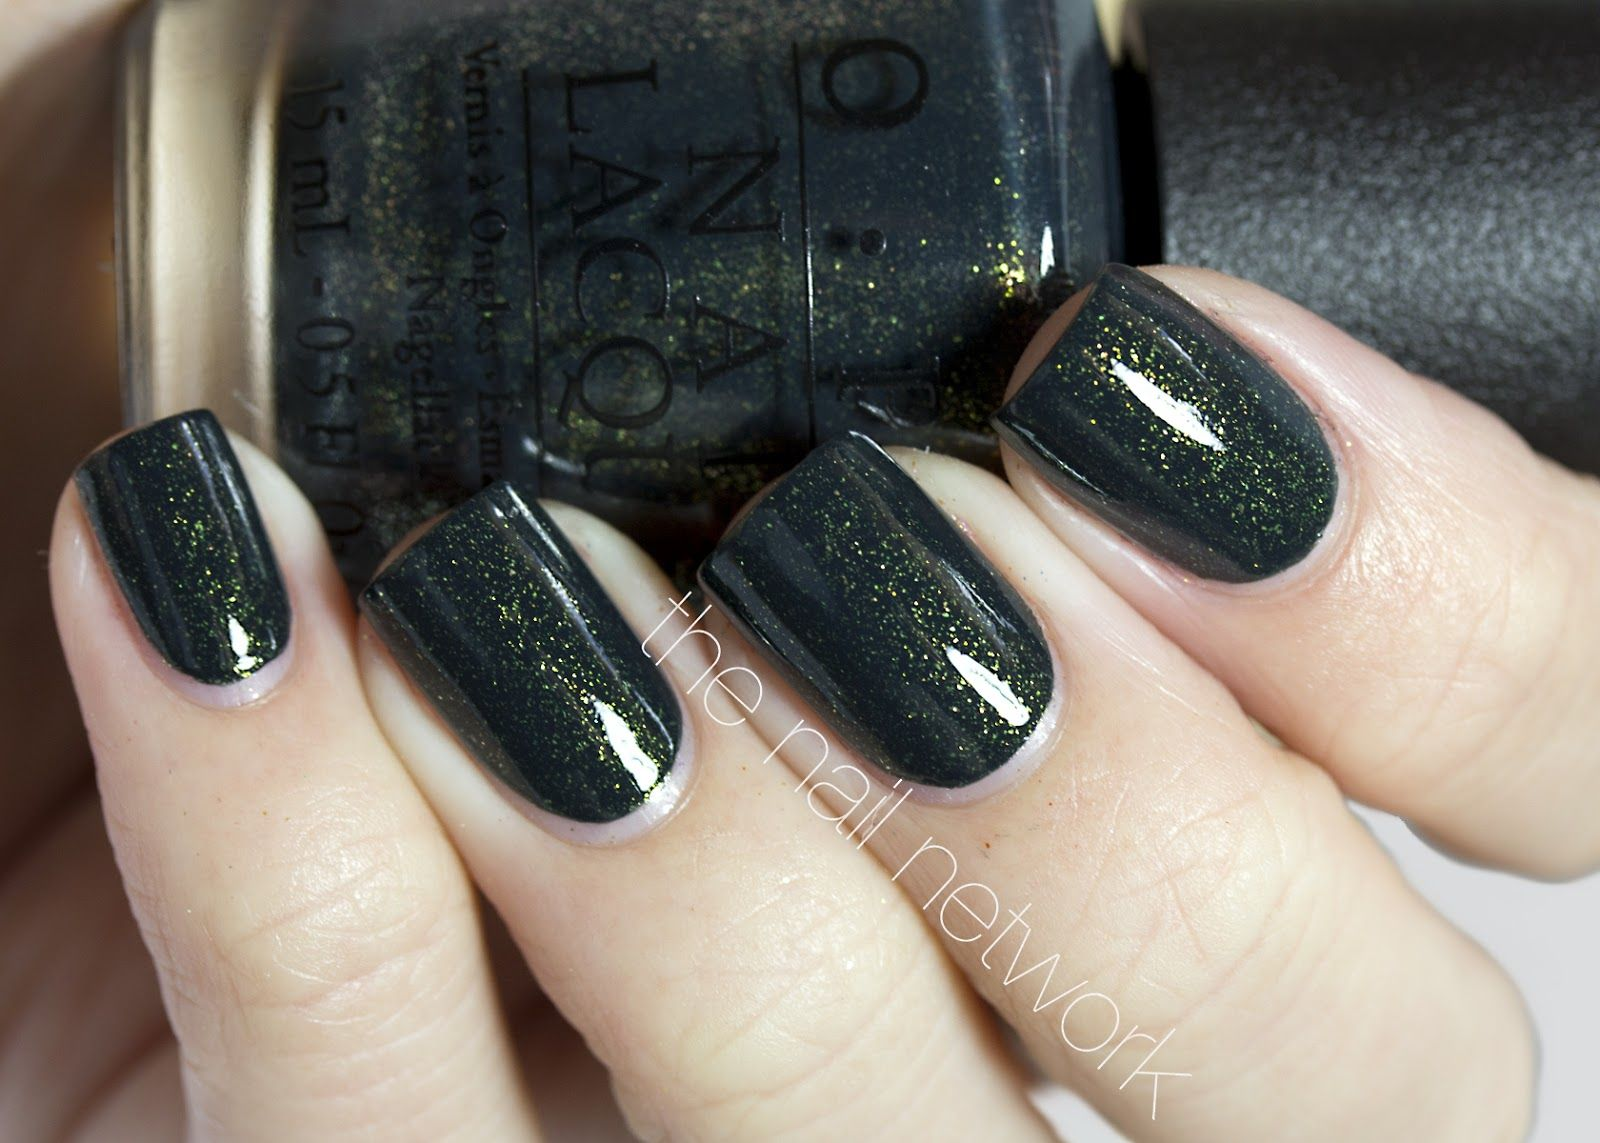 OPI - Skyfall Collection - Live and Let Die. Such a unique color ...